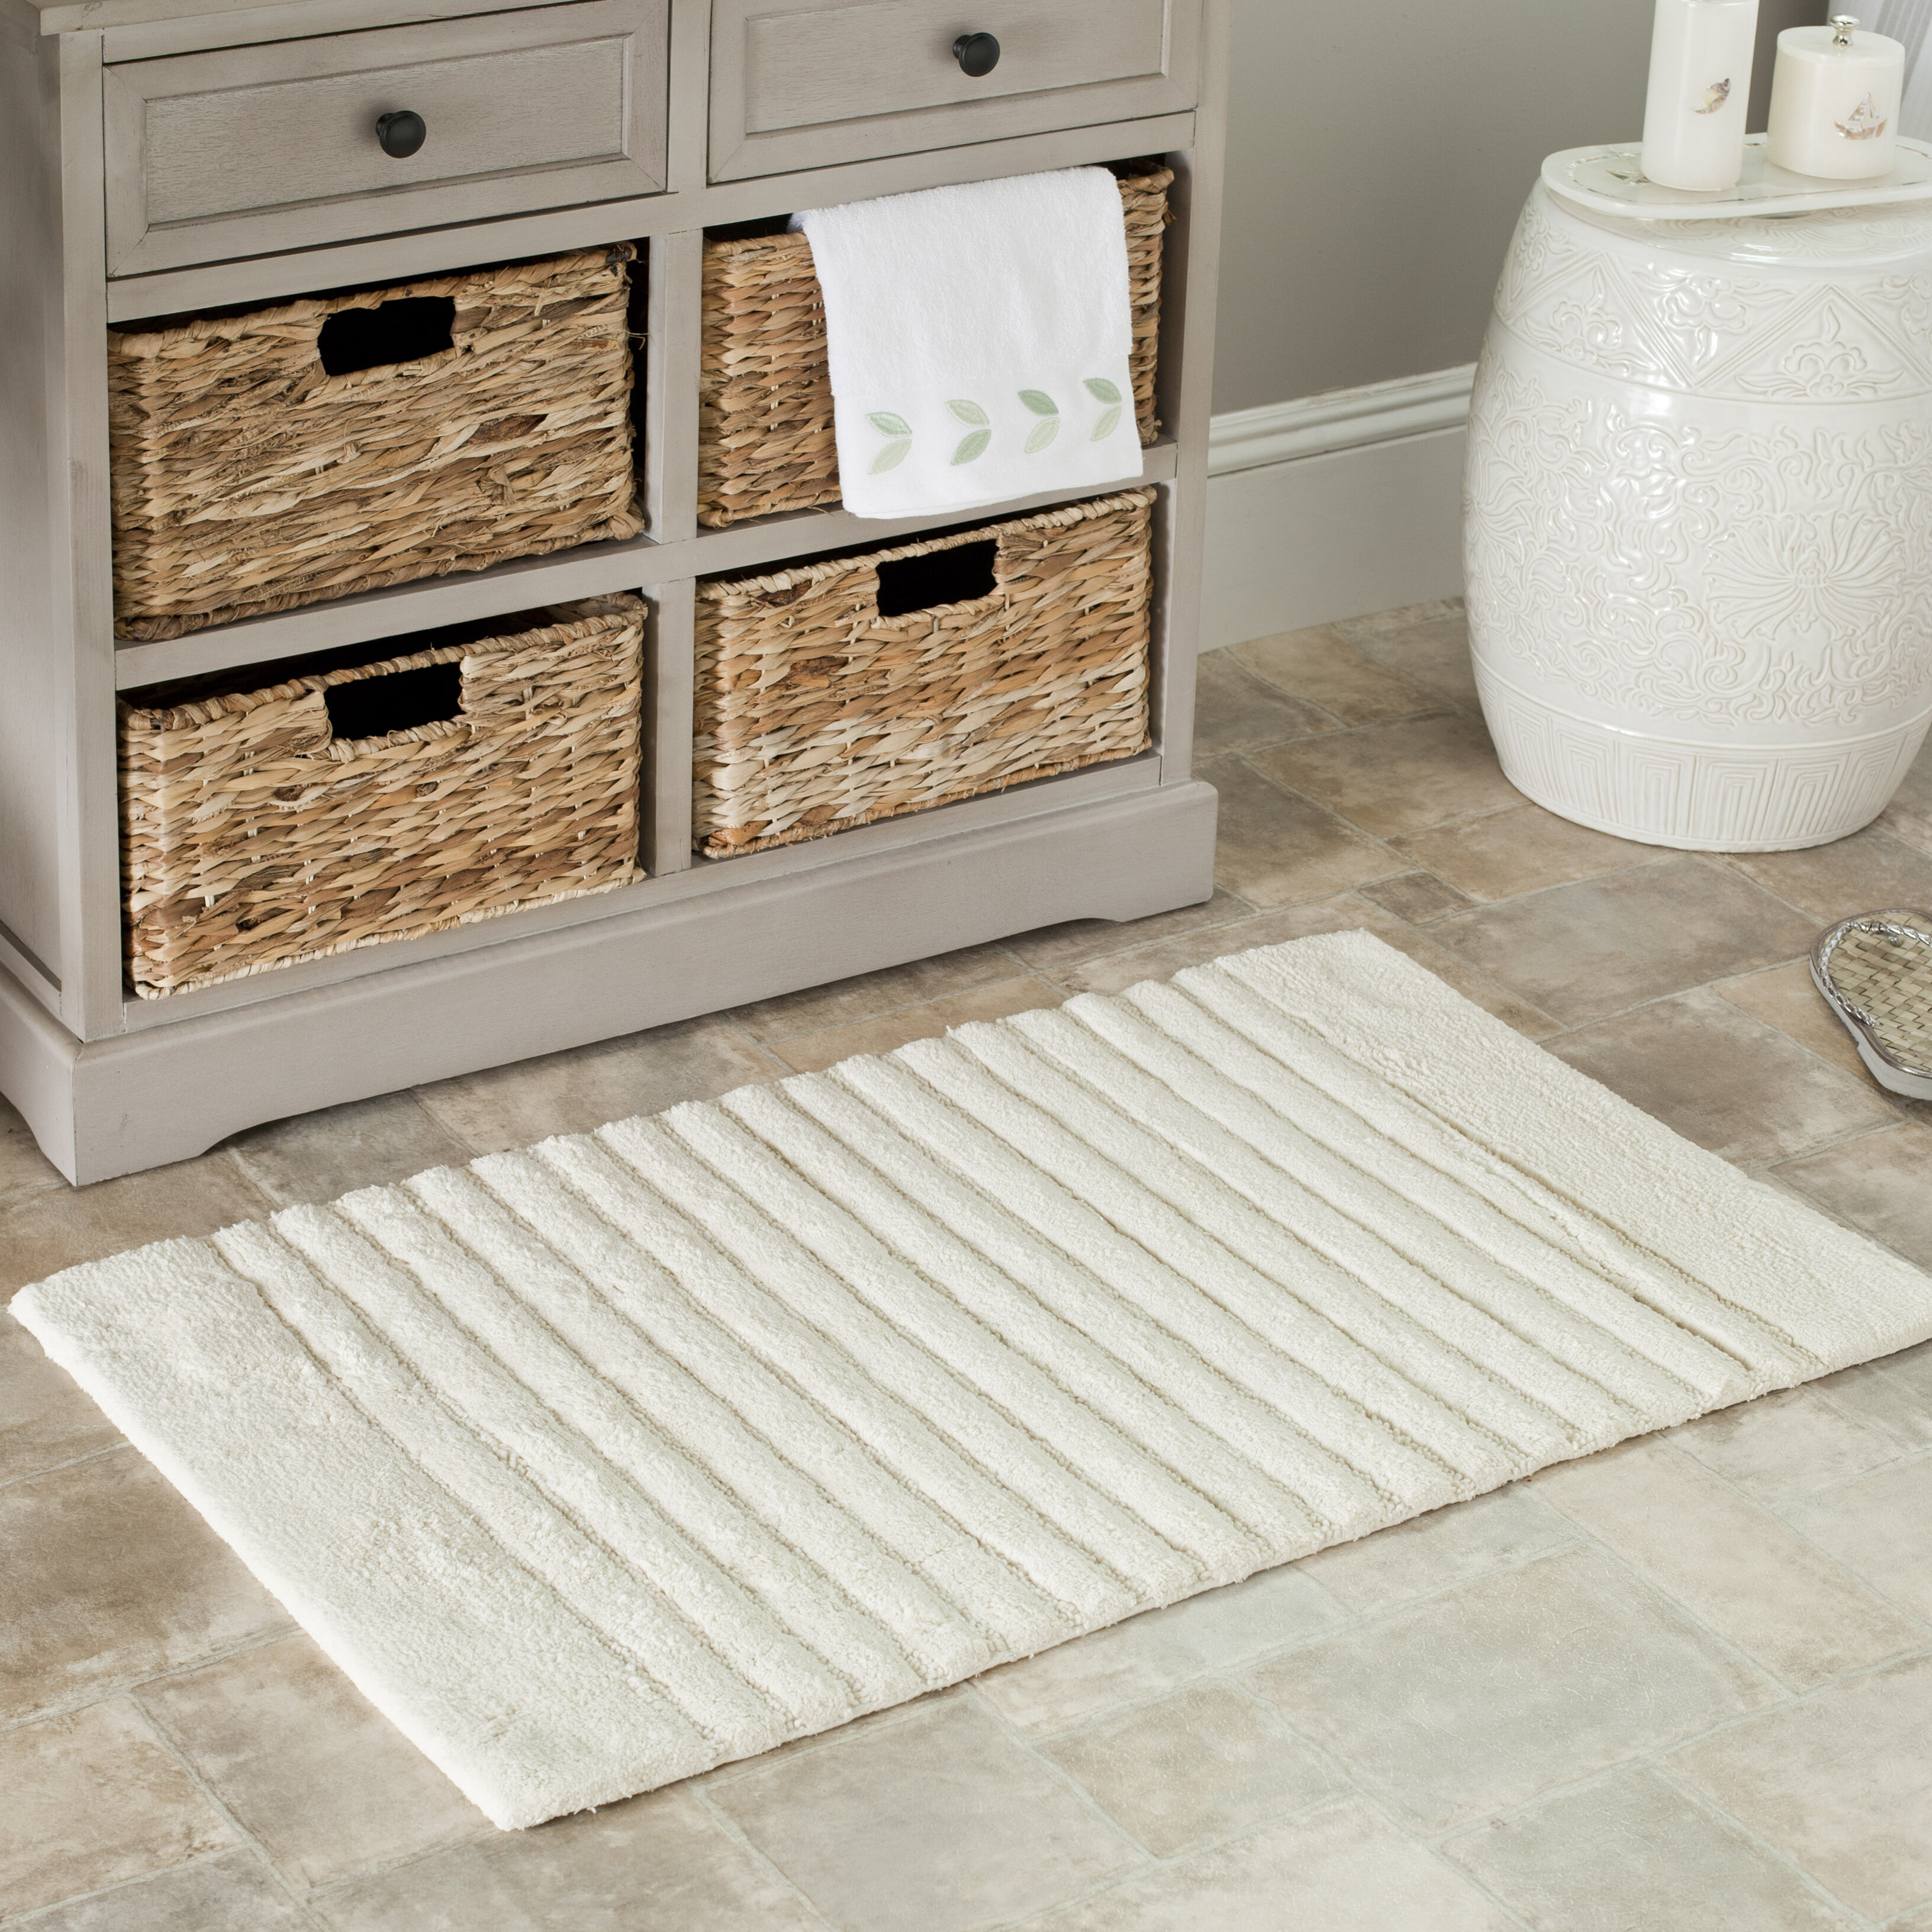 Safavieh 2 piece plush master bath rug set reviews wayfair for Master bathroom rugs